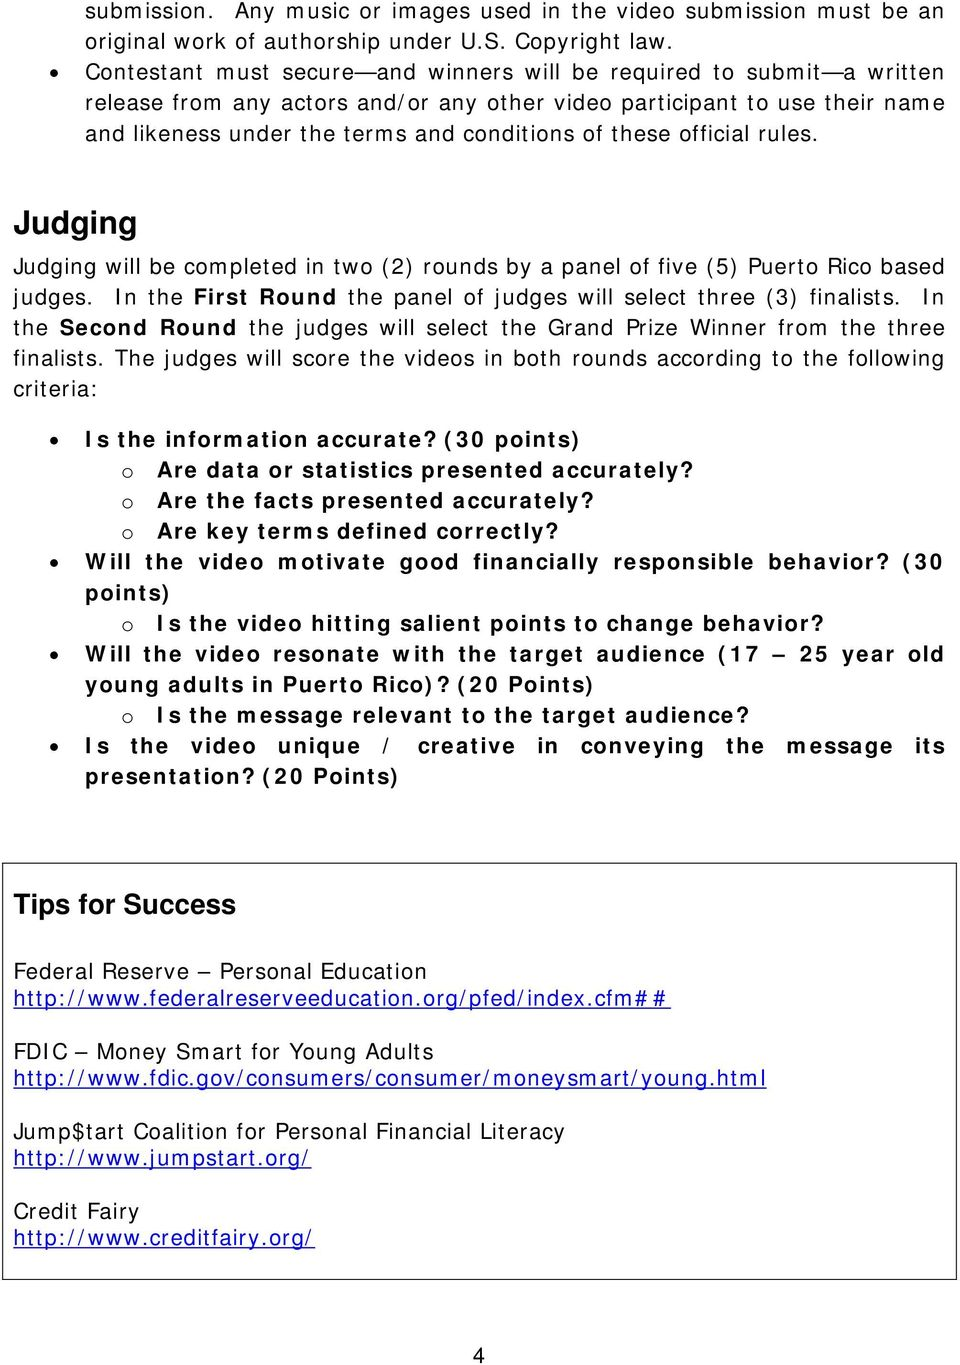 these official rules. Judging Judging will be completed in two (2) rounds by a panel of five (5) Puerto Rico based judges. In the First Round the panel of judges will select three (3) finalists.